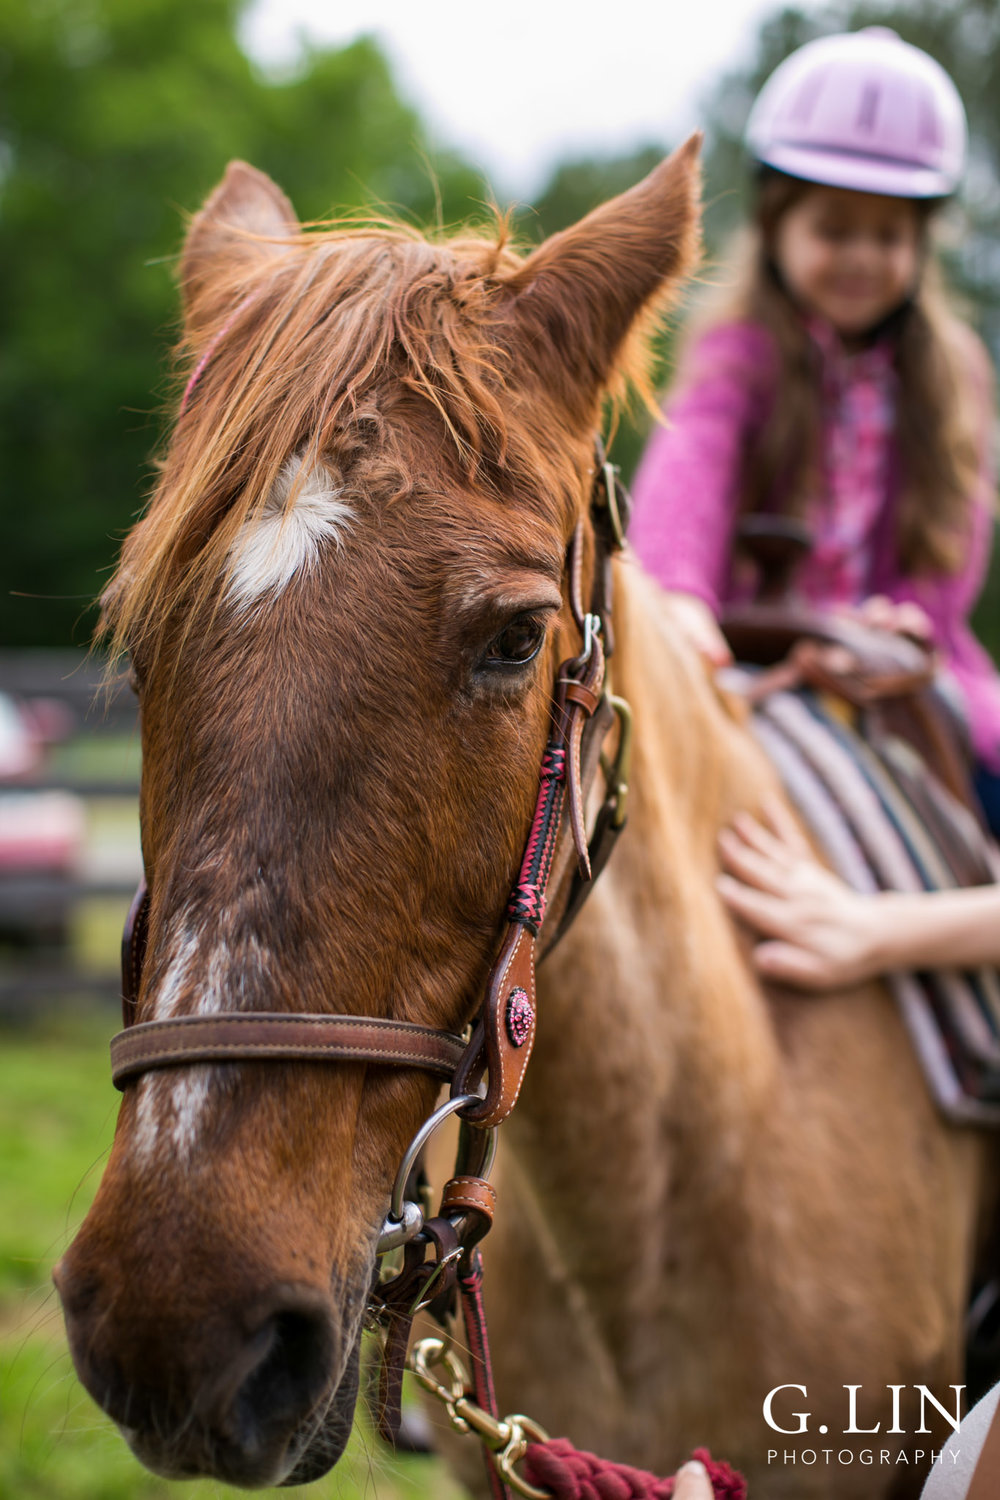 G. Lin Photography | Raleigh Event Photographer | Girl on horse riding around track